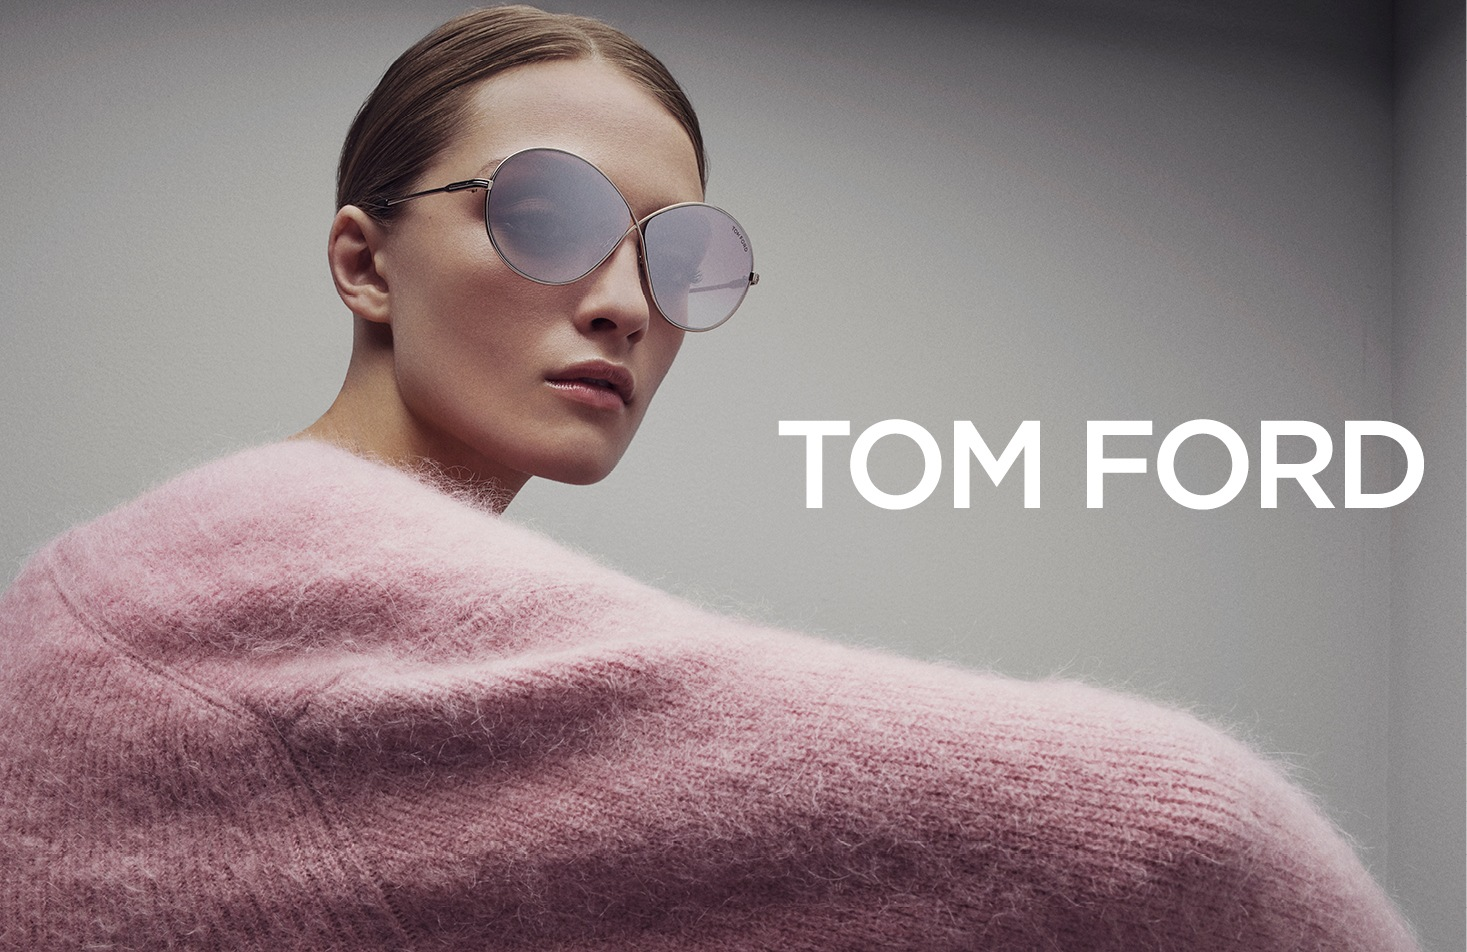 Tom Ford FW17 Online Editorial Content